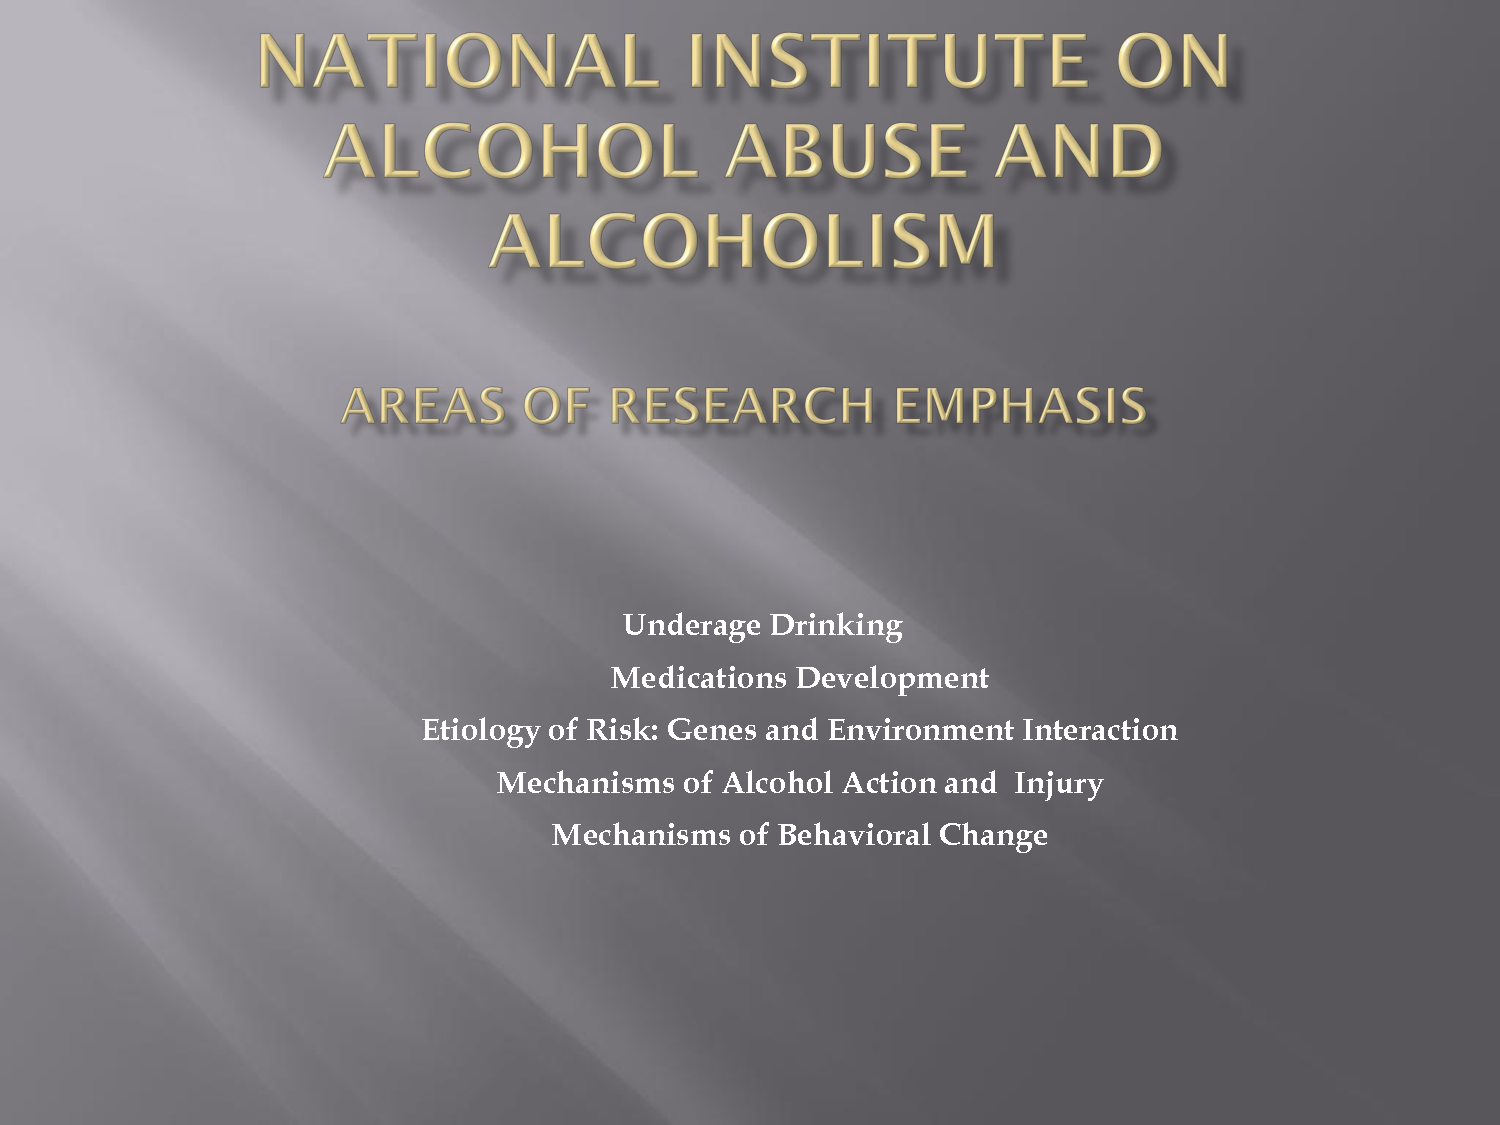 the causes and consequences of alcohol abuse Decreased academic performance is often one of the first noticeable signs of drug or alcohol abuse by college students substance abuse causes grades to slide because you're no longer able to keep up with your studies and perform to the best of your abilities, according to a publication by the.